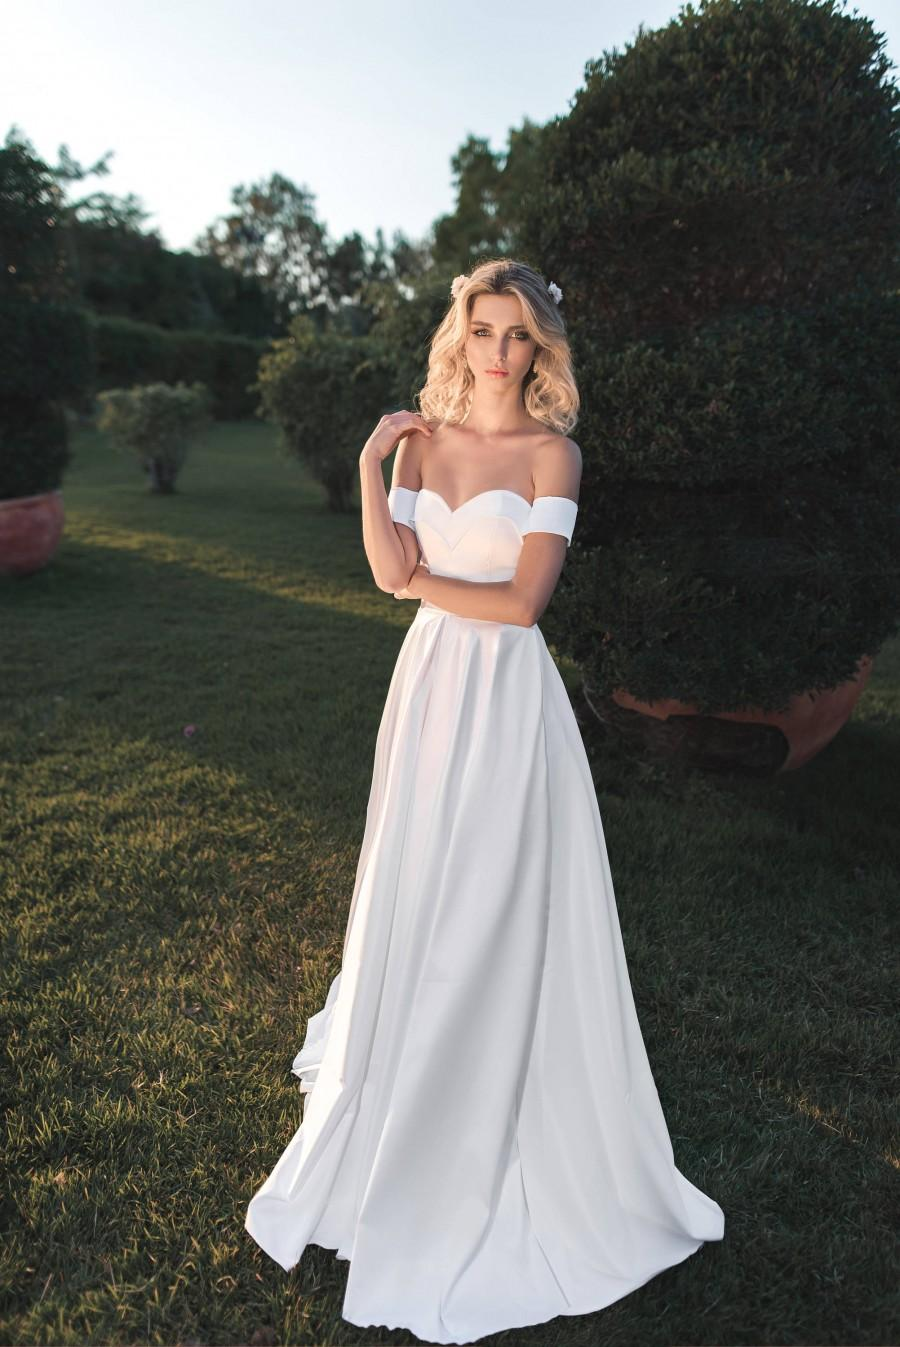 Wedding - Classic Timeless Strapless Sweetheart Wedding Dress, White Party Maxi Dress